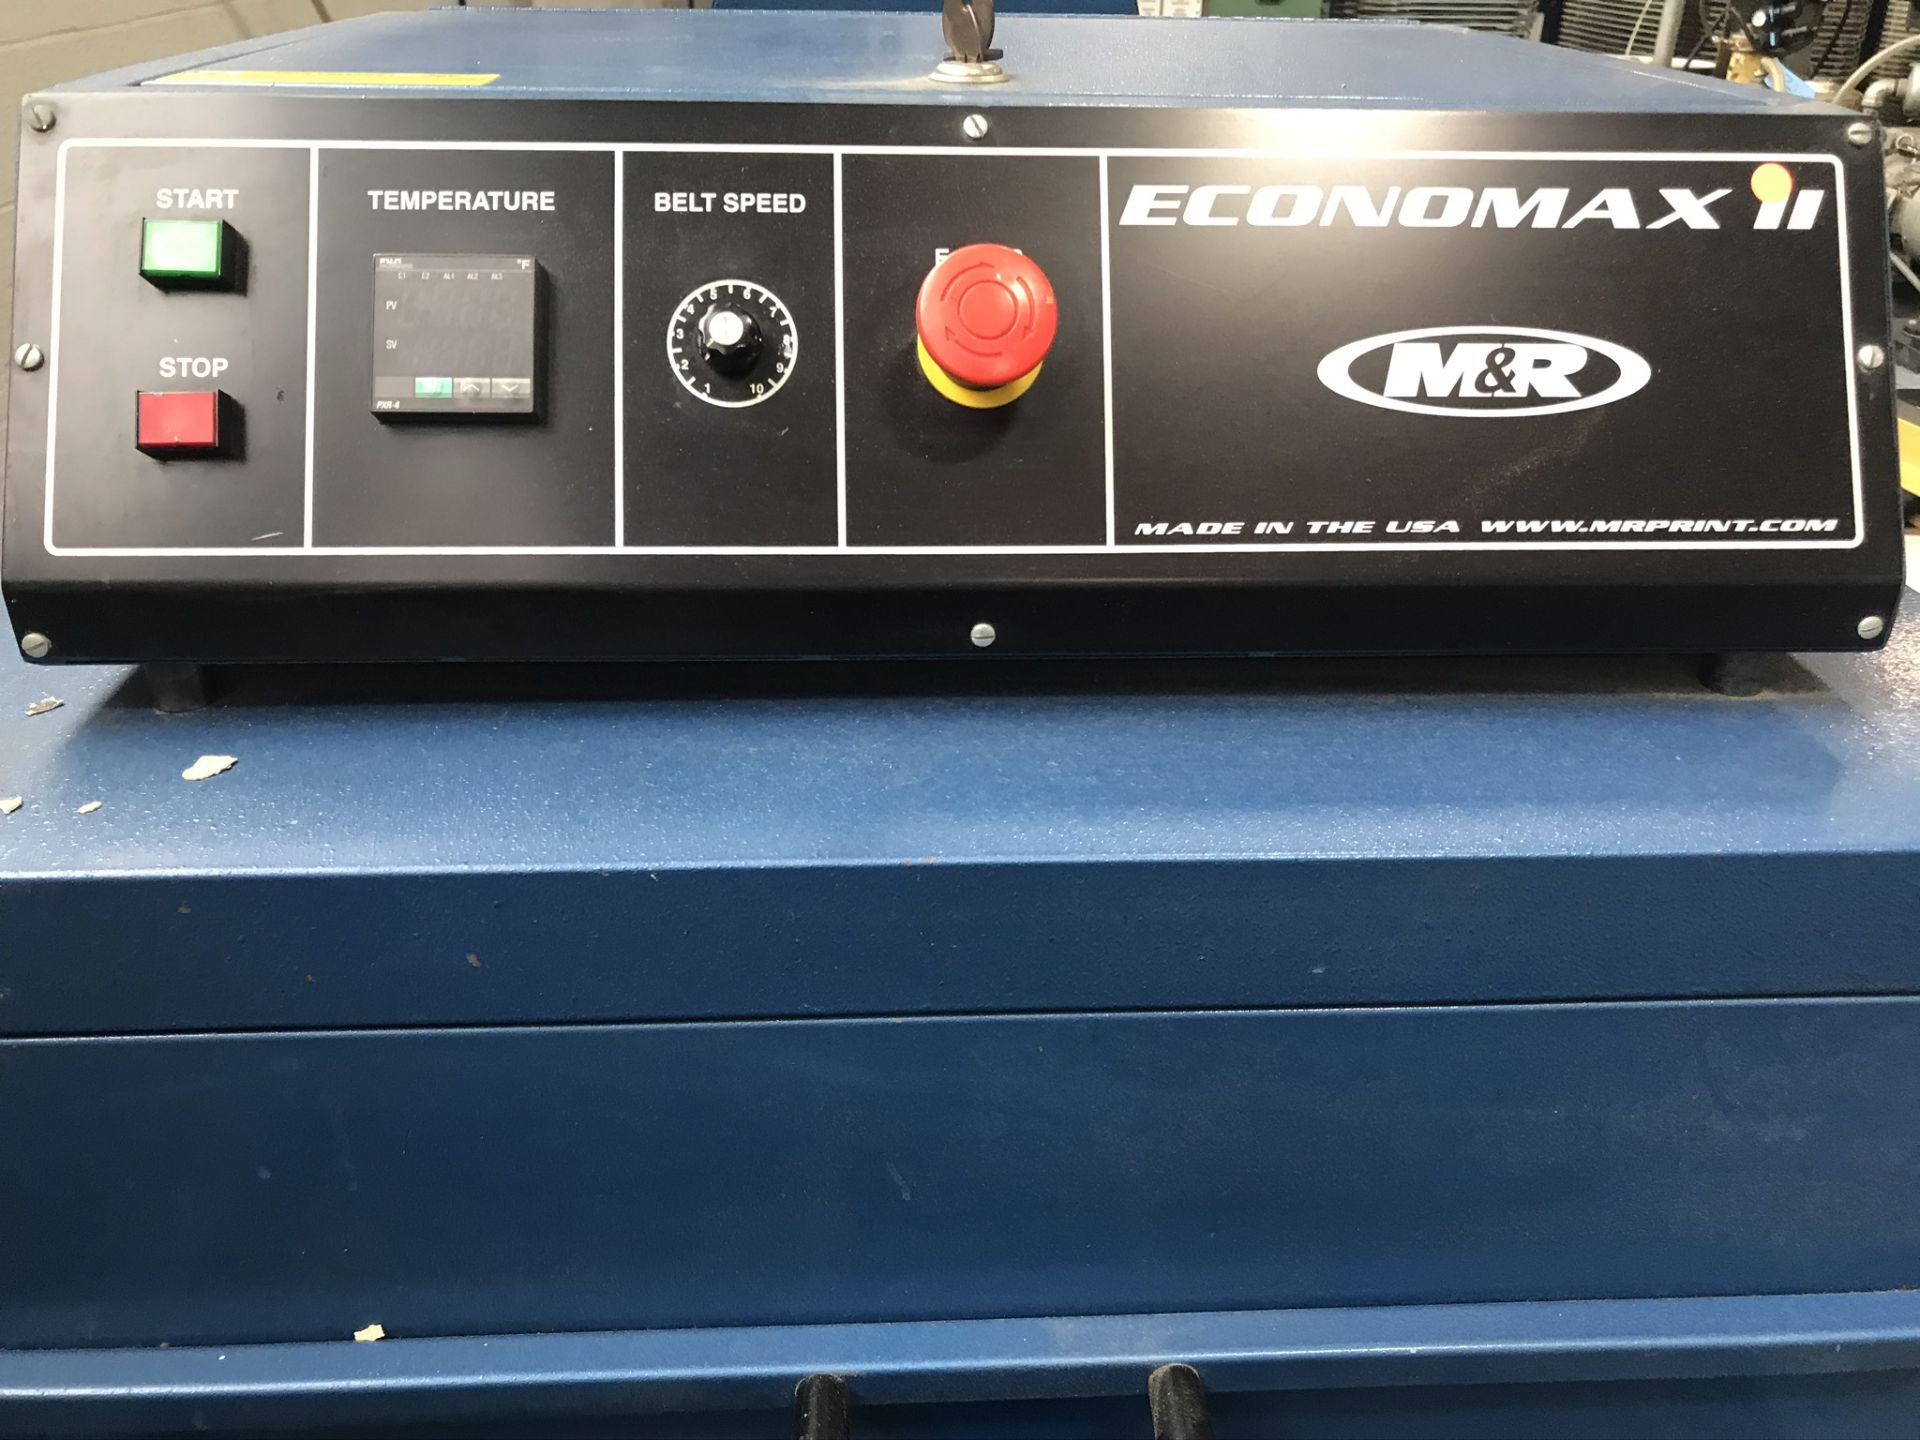 M&R Economax II ECMXII2432016A21 Drying Oven - Image 5 of 6